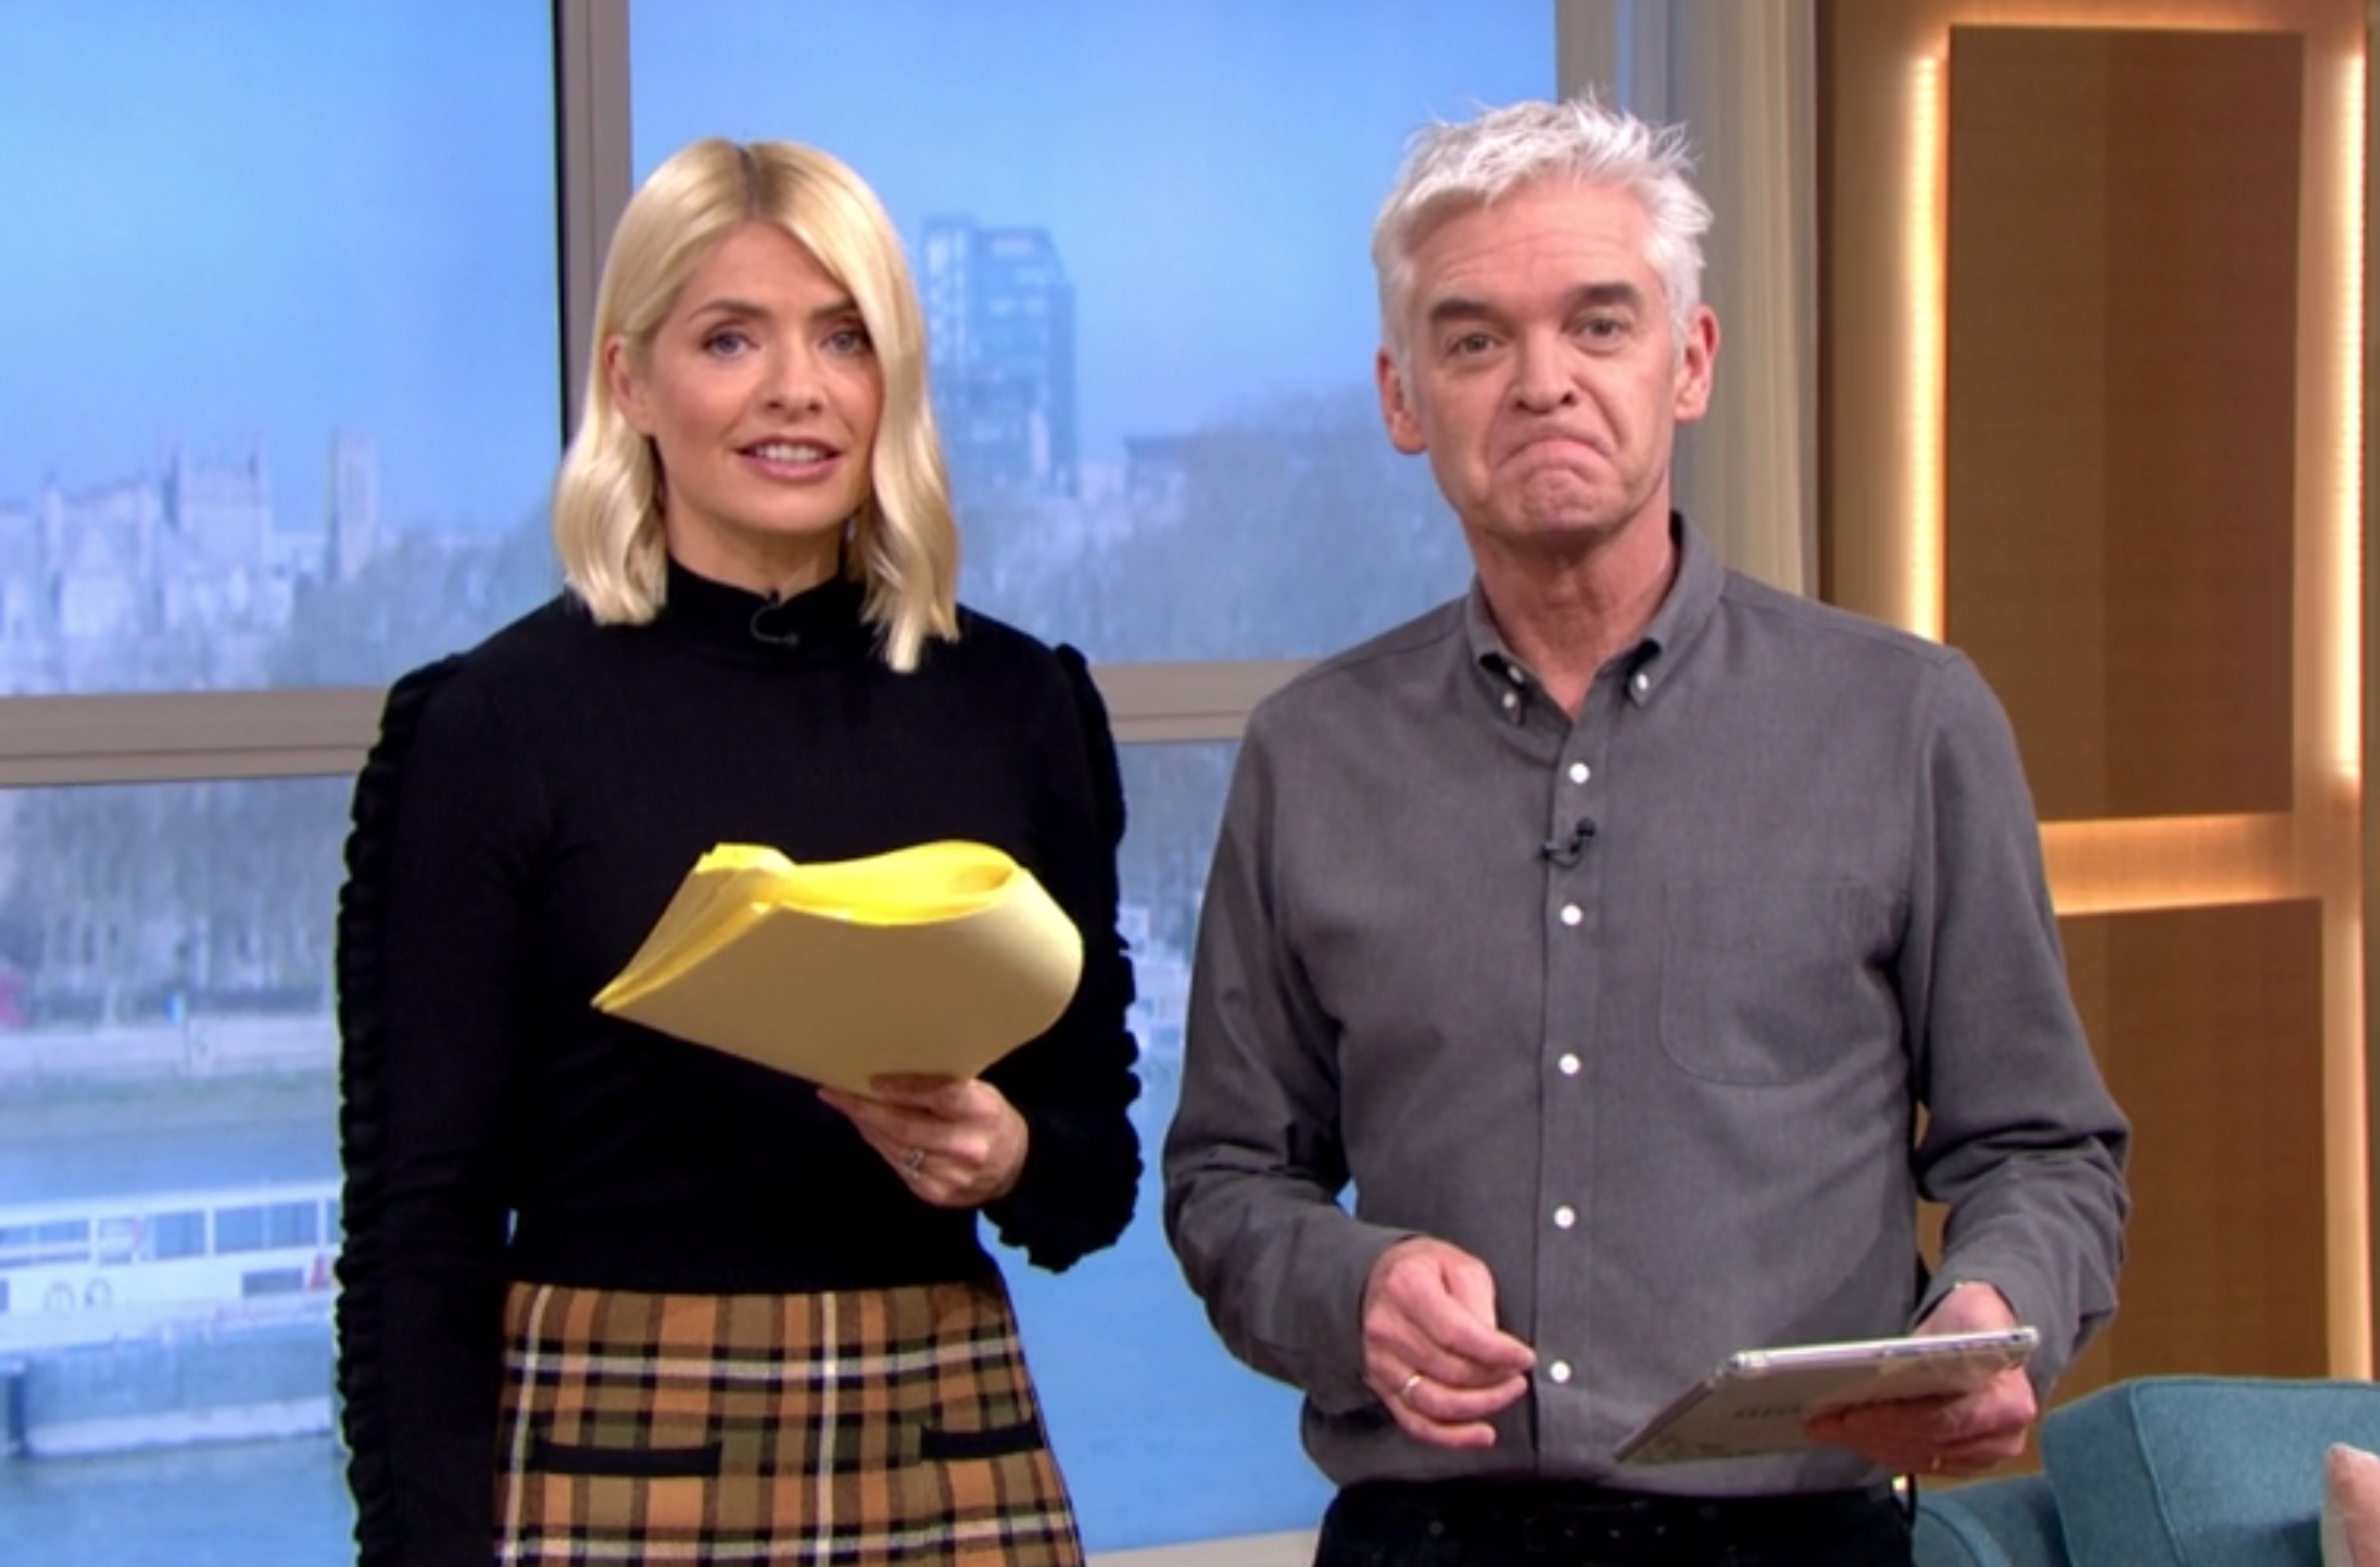 Phillip Schofield and Ruth Langsford come face-to-face on air for first time since 'formal complaint'